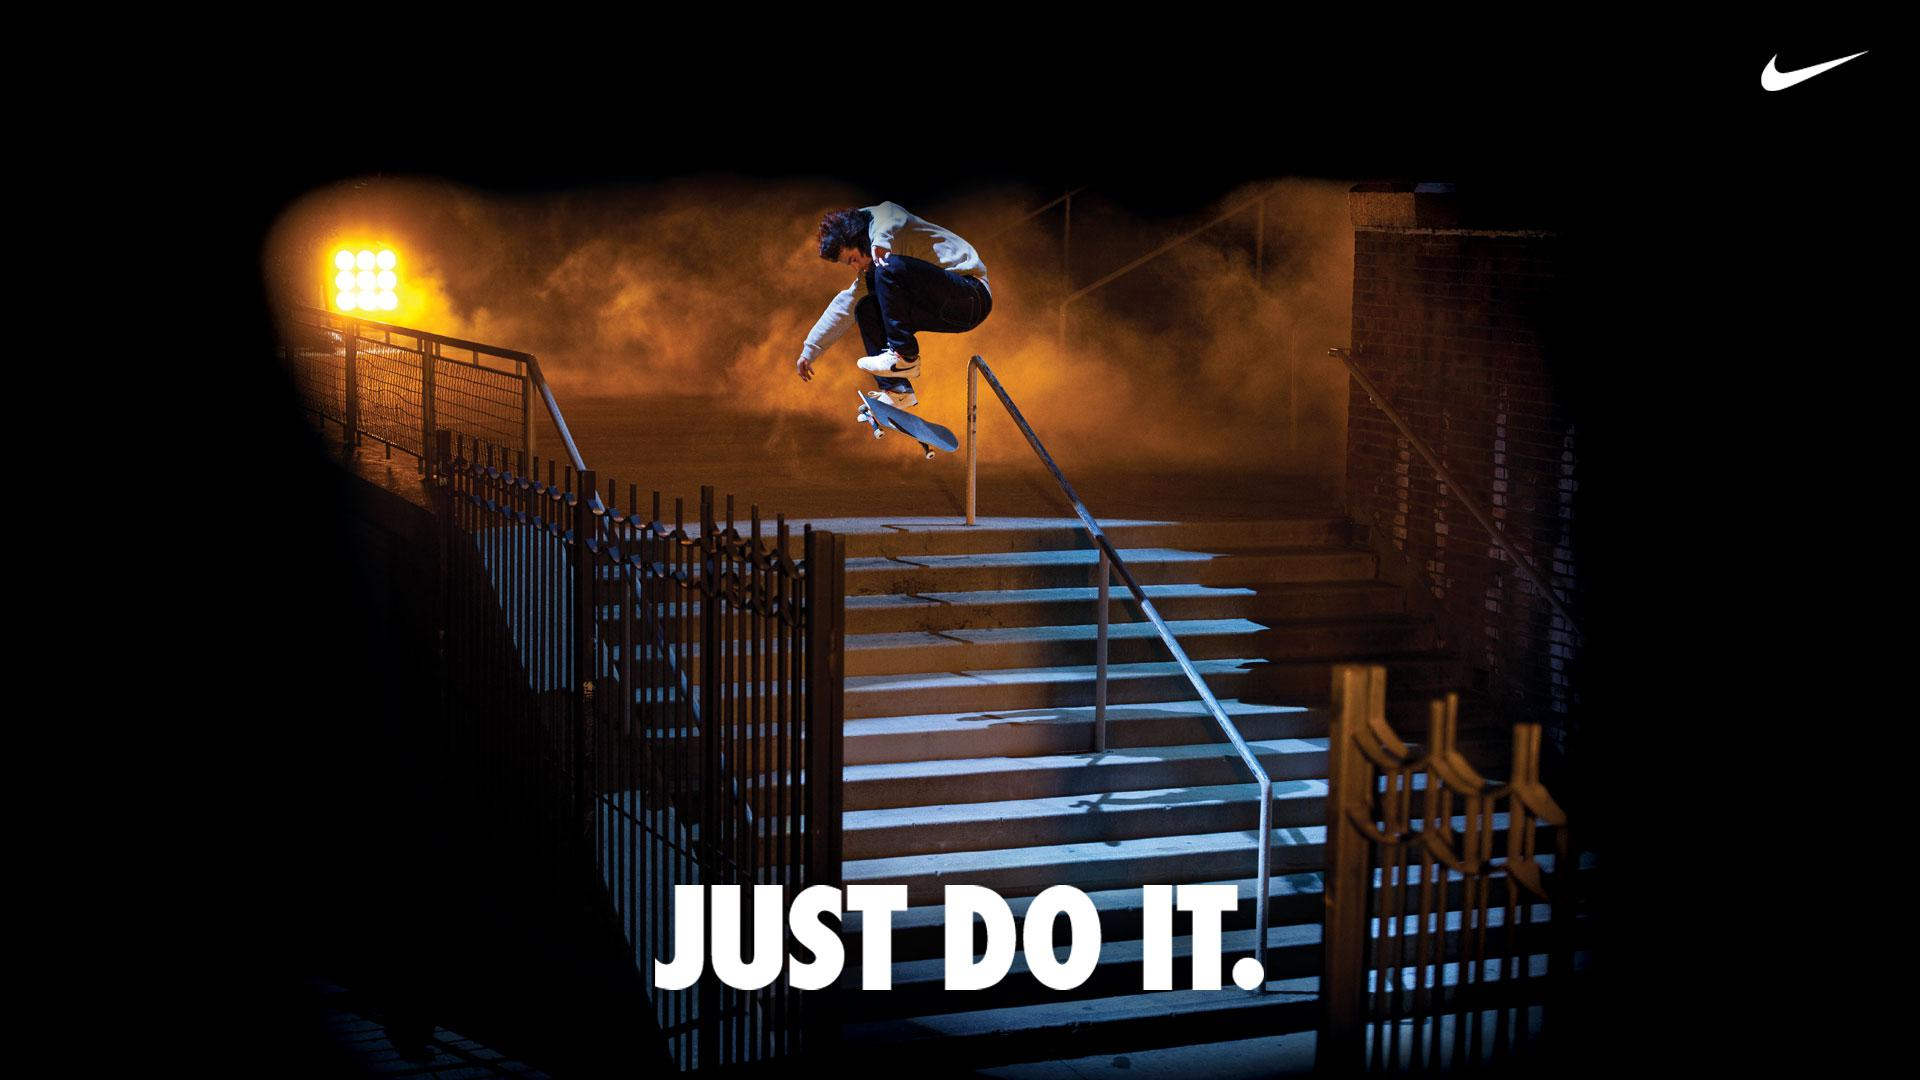 Just Do It Backgrounds